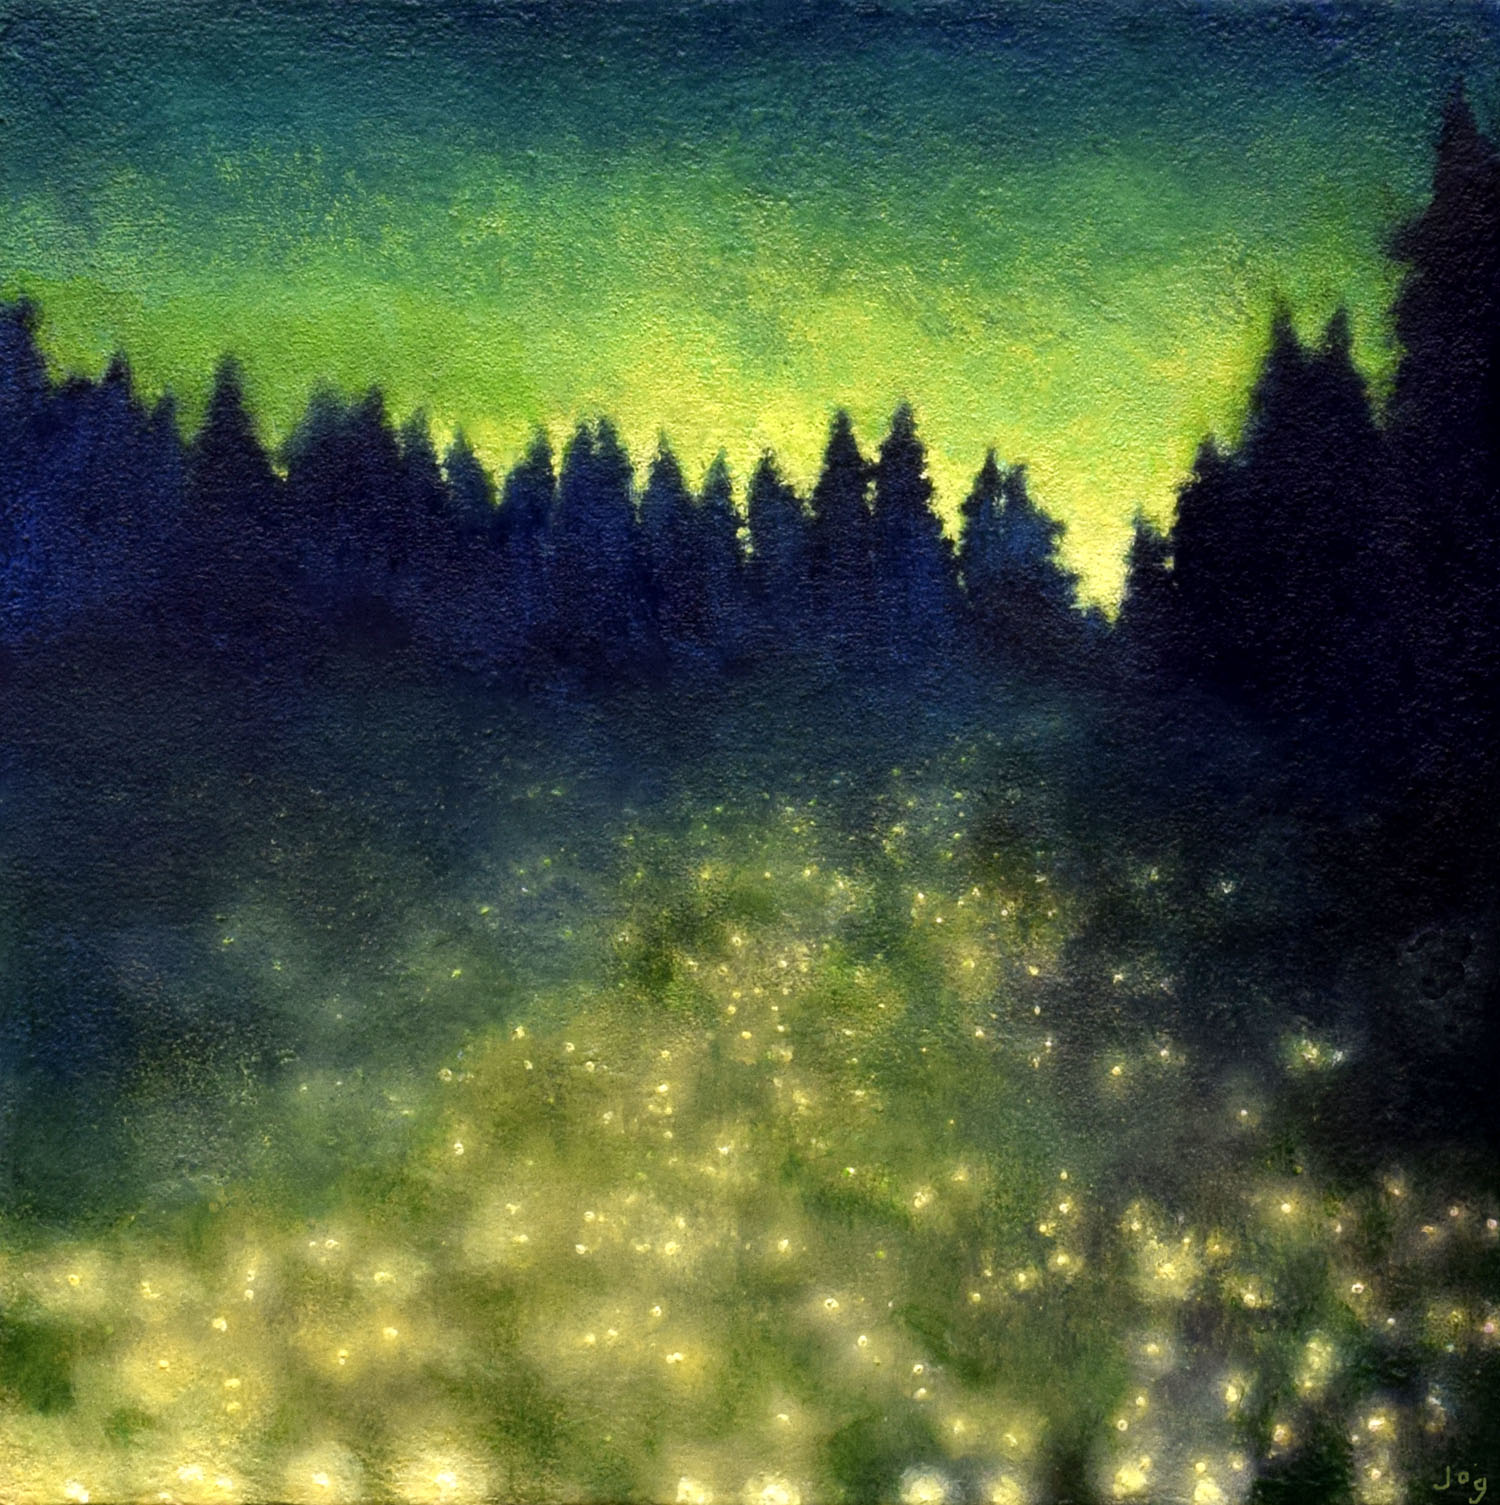 Dreamlike original painting called 'The Field of Fallen Stars' by John O'Grady